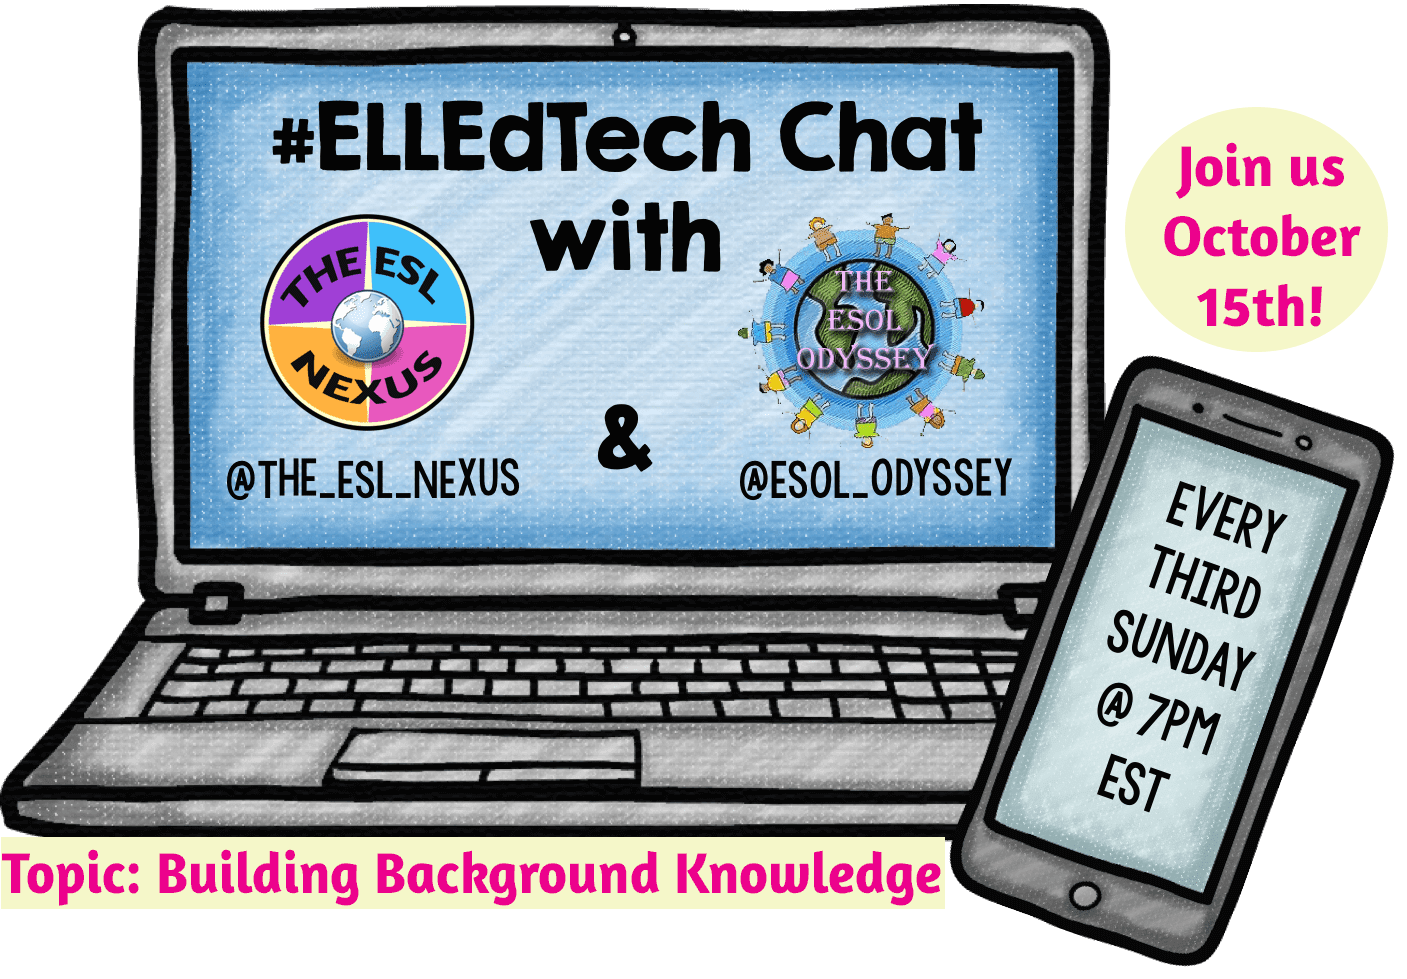 You are invited to the October #ELLEdTech chat on 10/15/17, where we'll discuss using technology tools to build background knowledge | The ESL Nexus